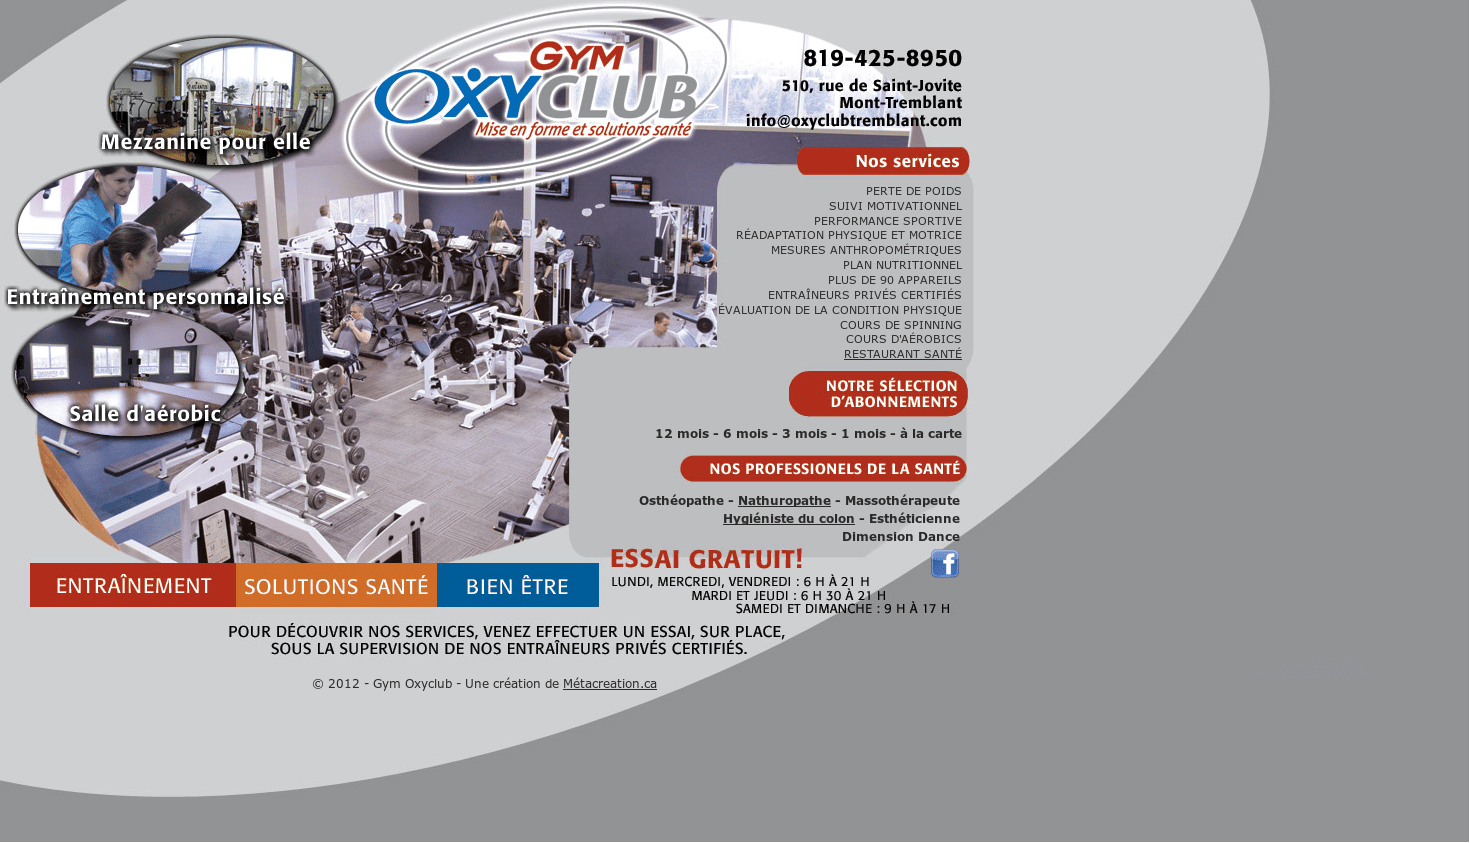 Garage Gym Vercors Gym Oxyclub Competitors Revenue And Employees Owler Company Profile